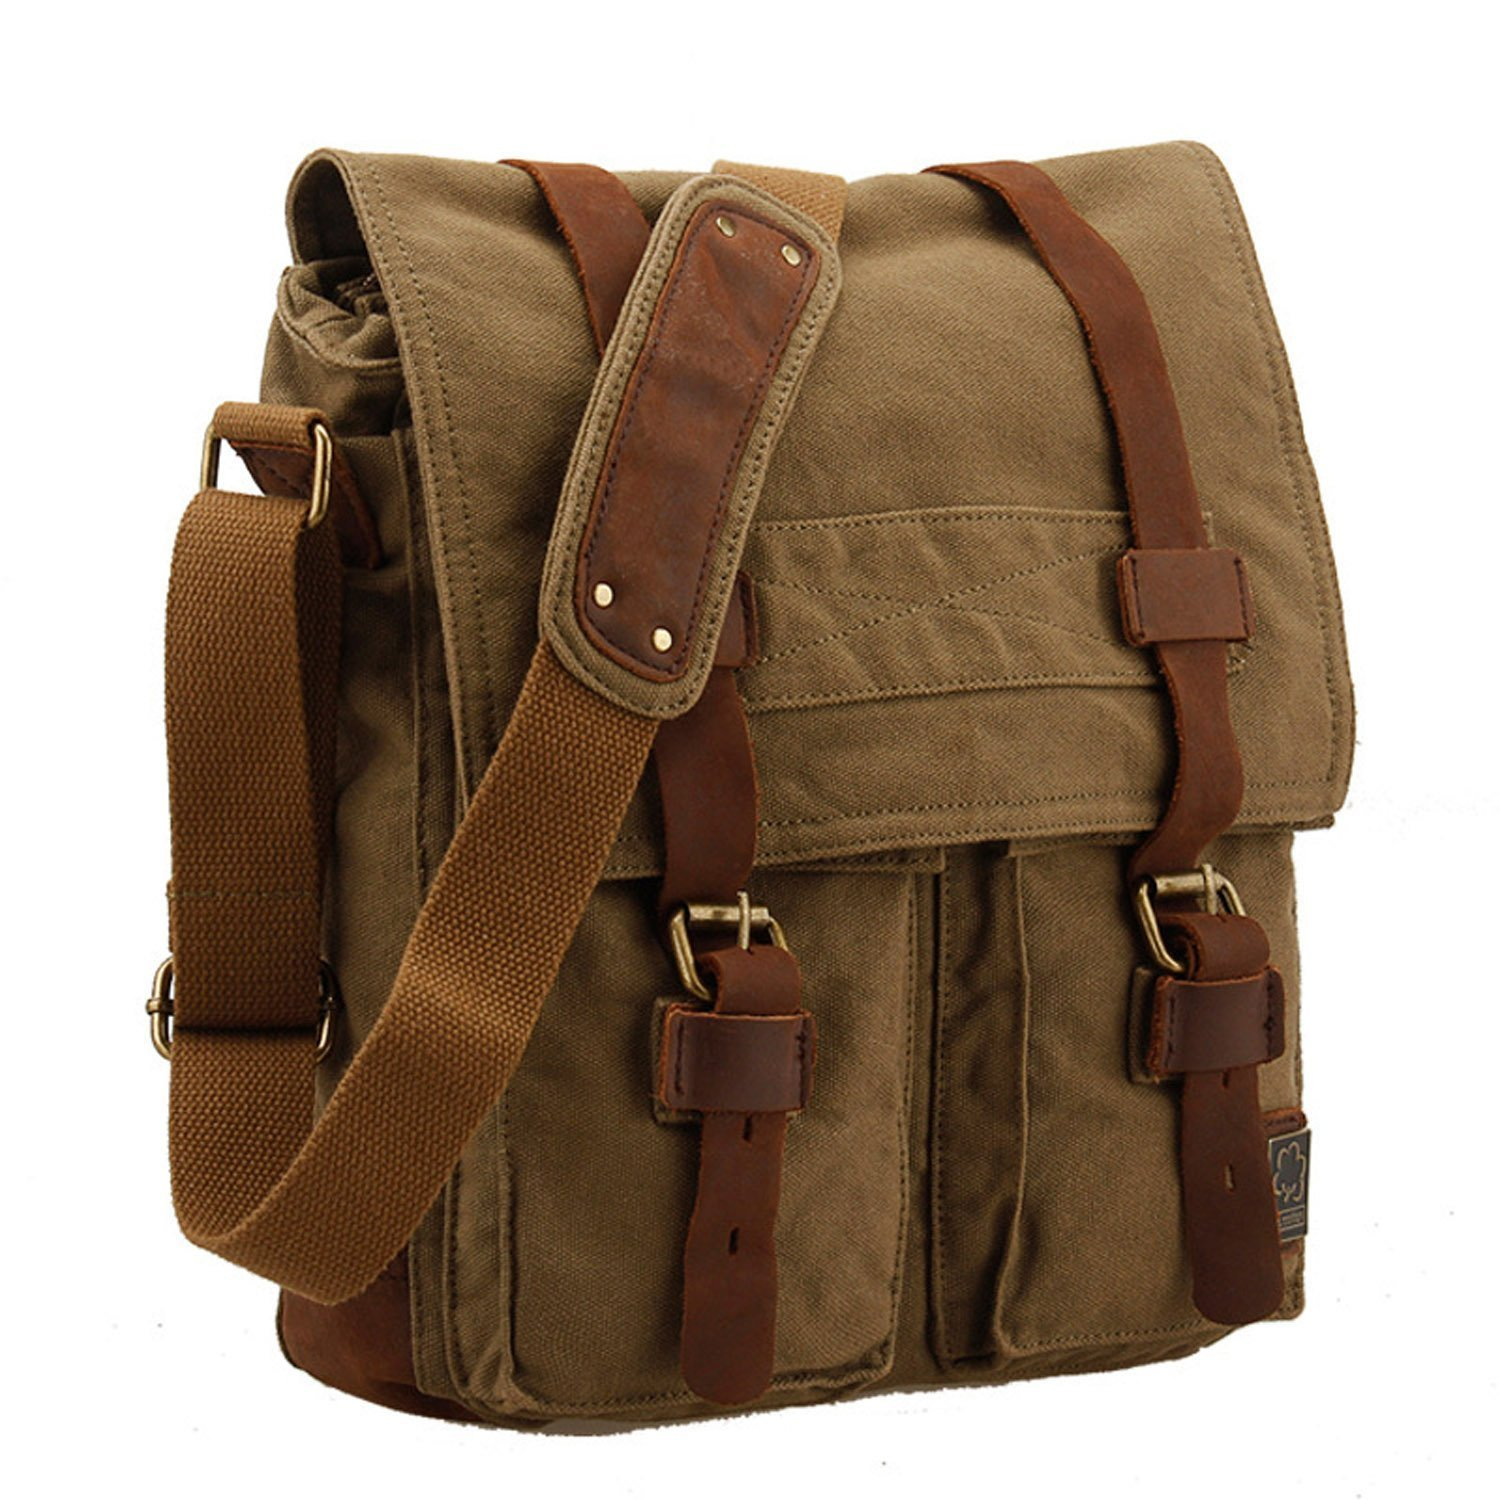 Canvas Strap For Bag Bag With Leather Straps